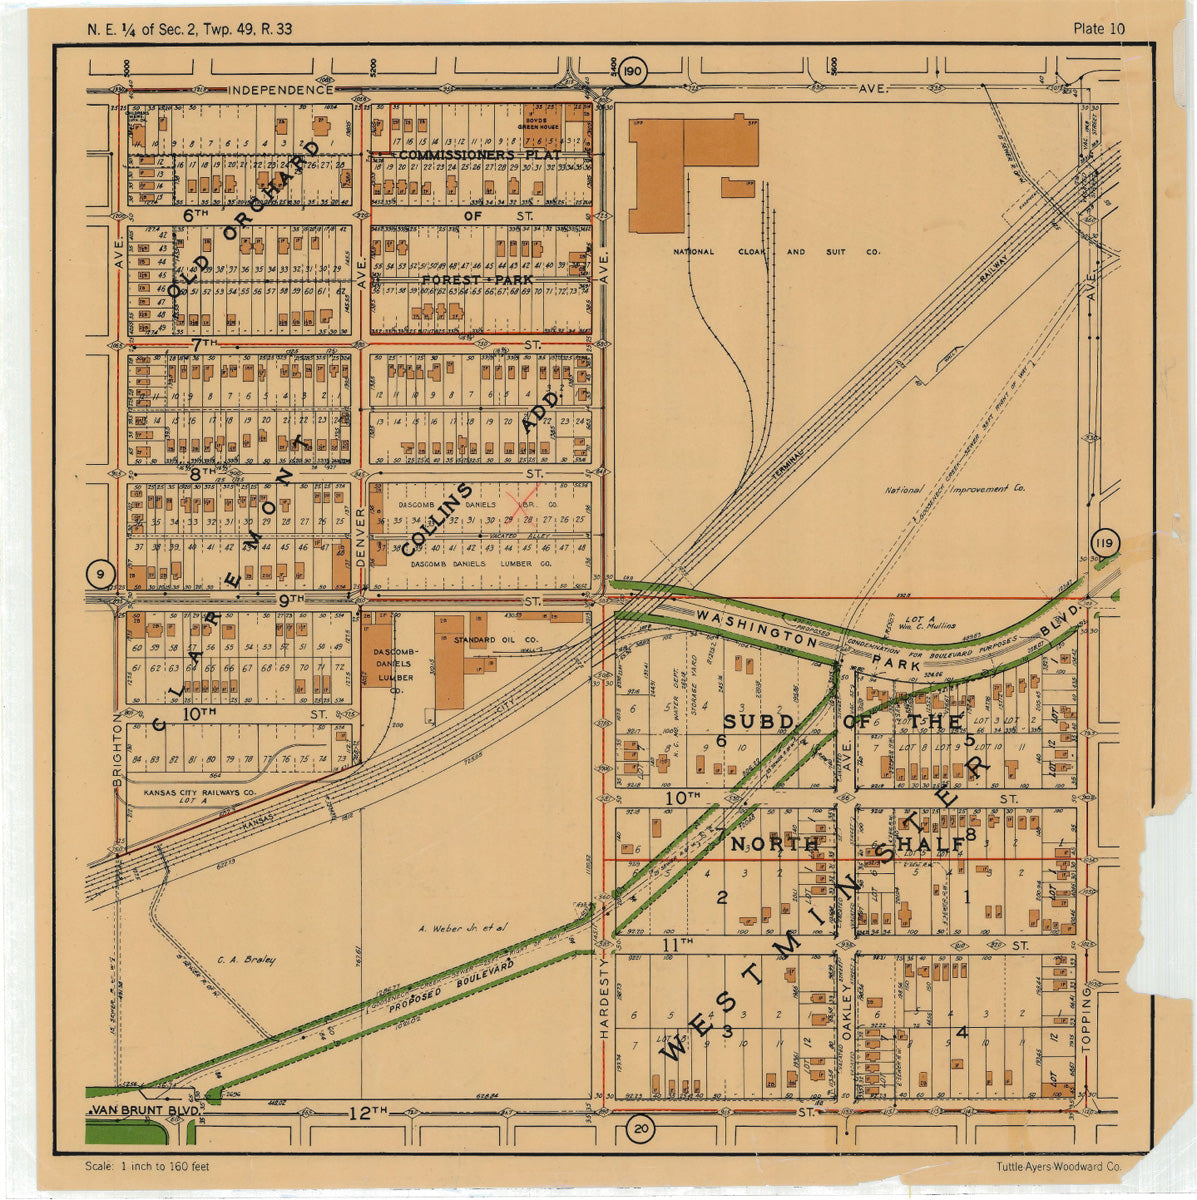 Kansas City 1925 Neighborhood Map - Plate #10 Independence-12th Brighton-Topping